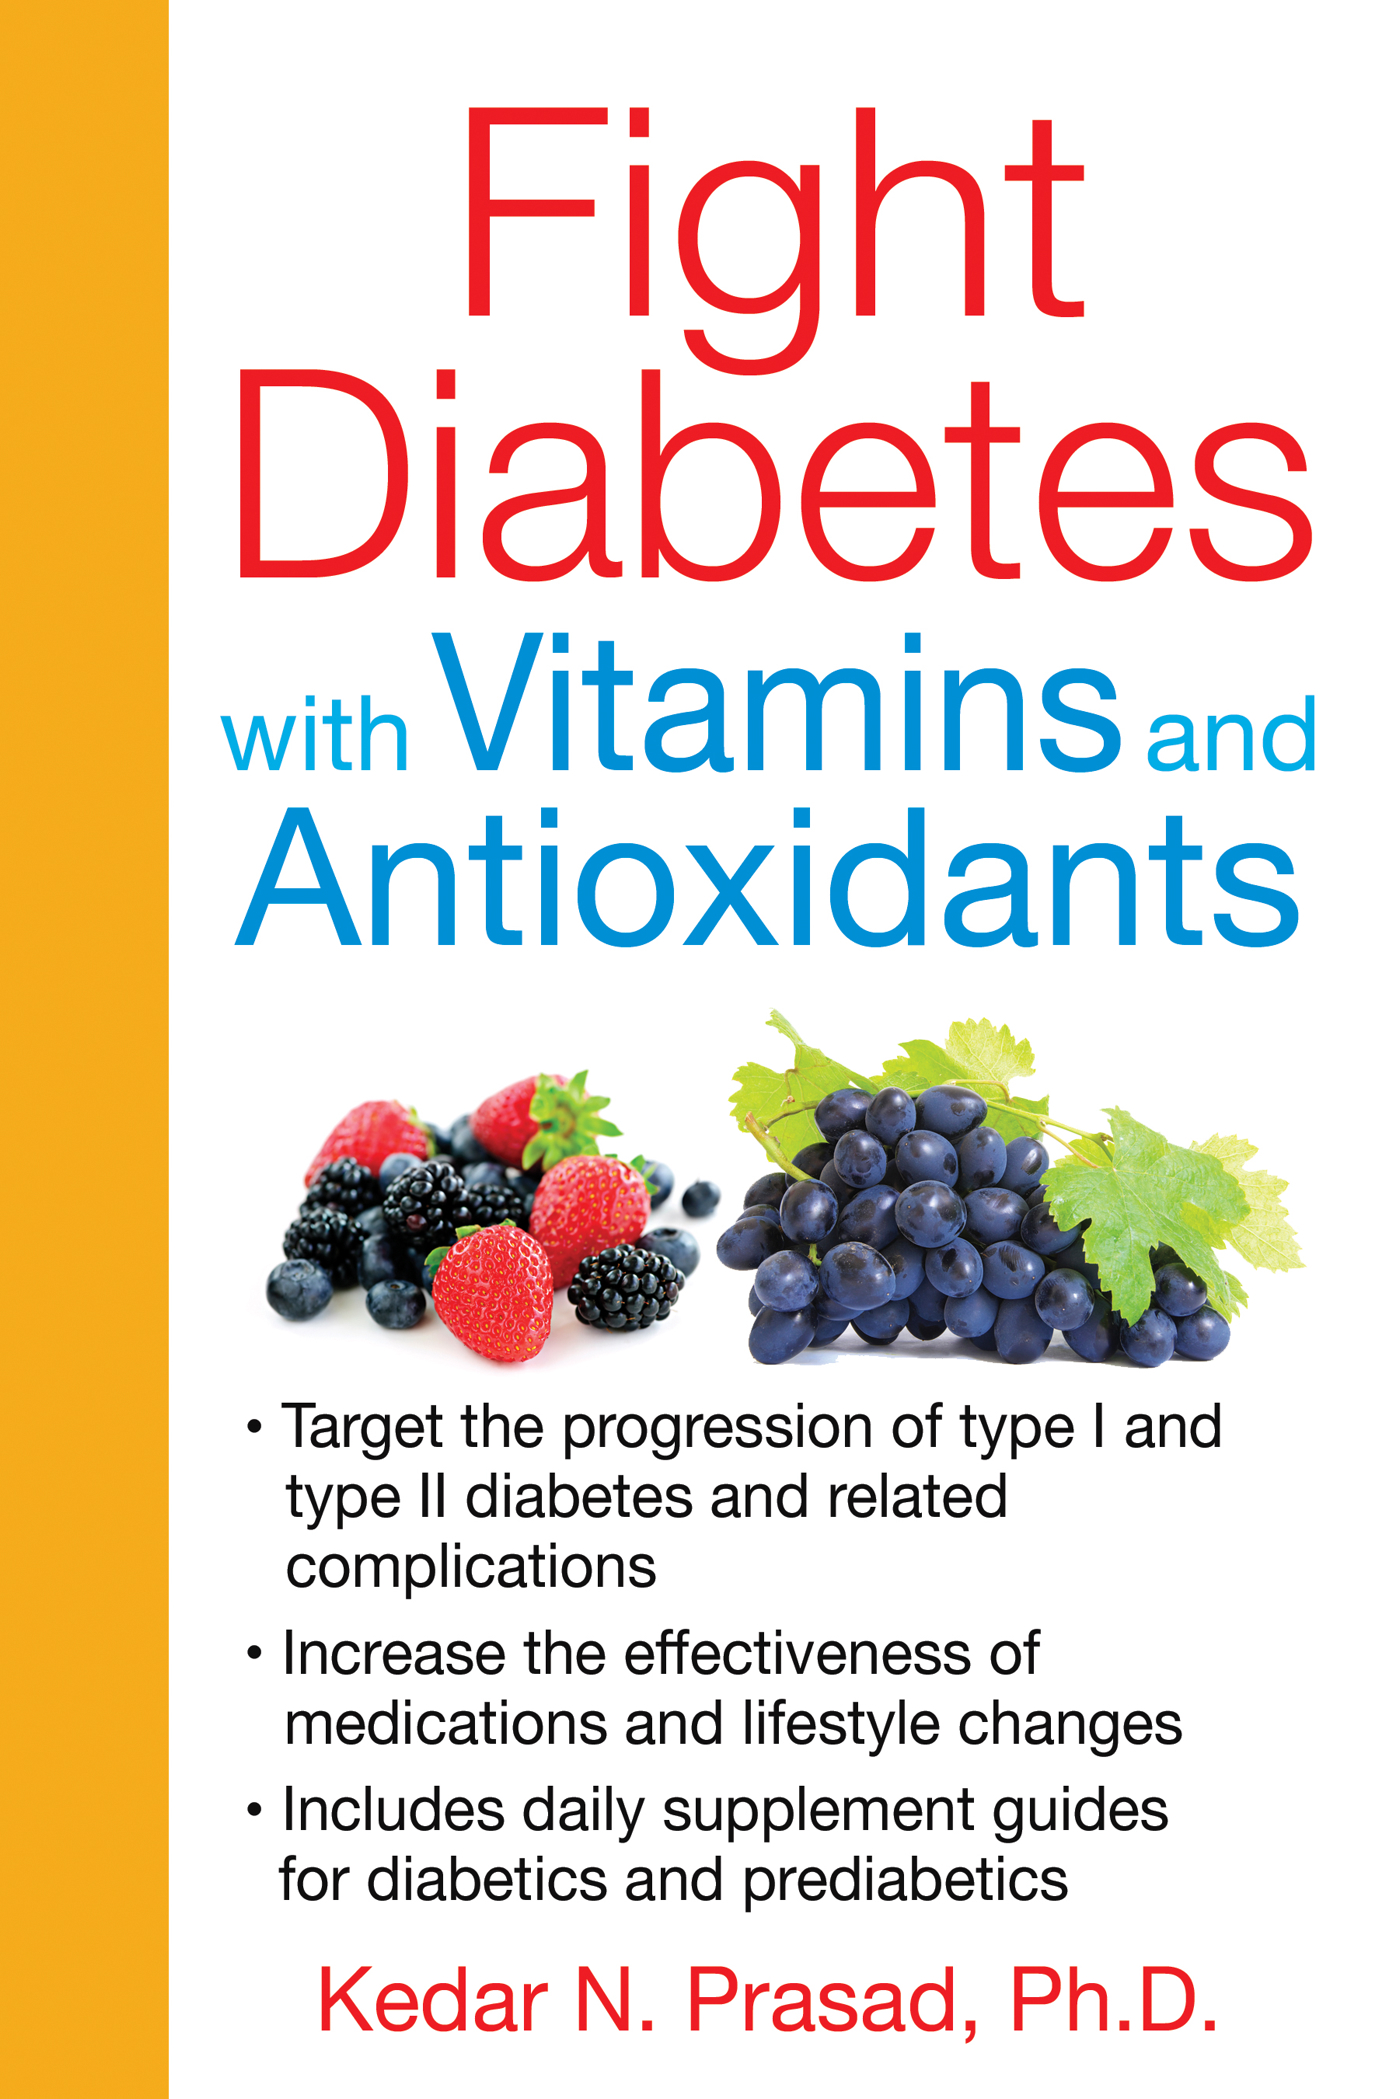 Fight diabetes with vitamins and antioxidants 9781620551660 hr